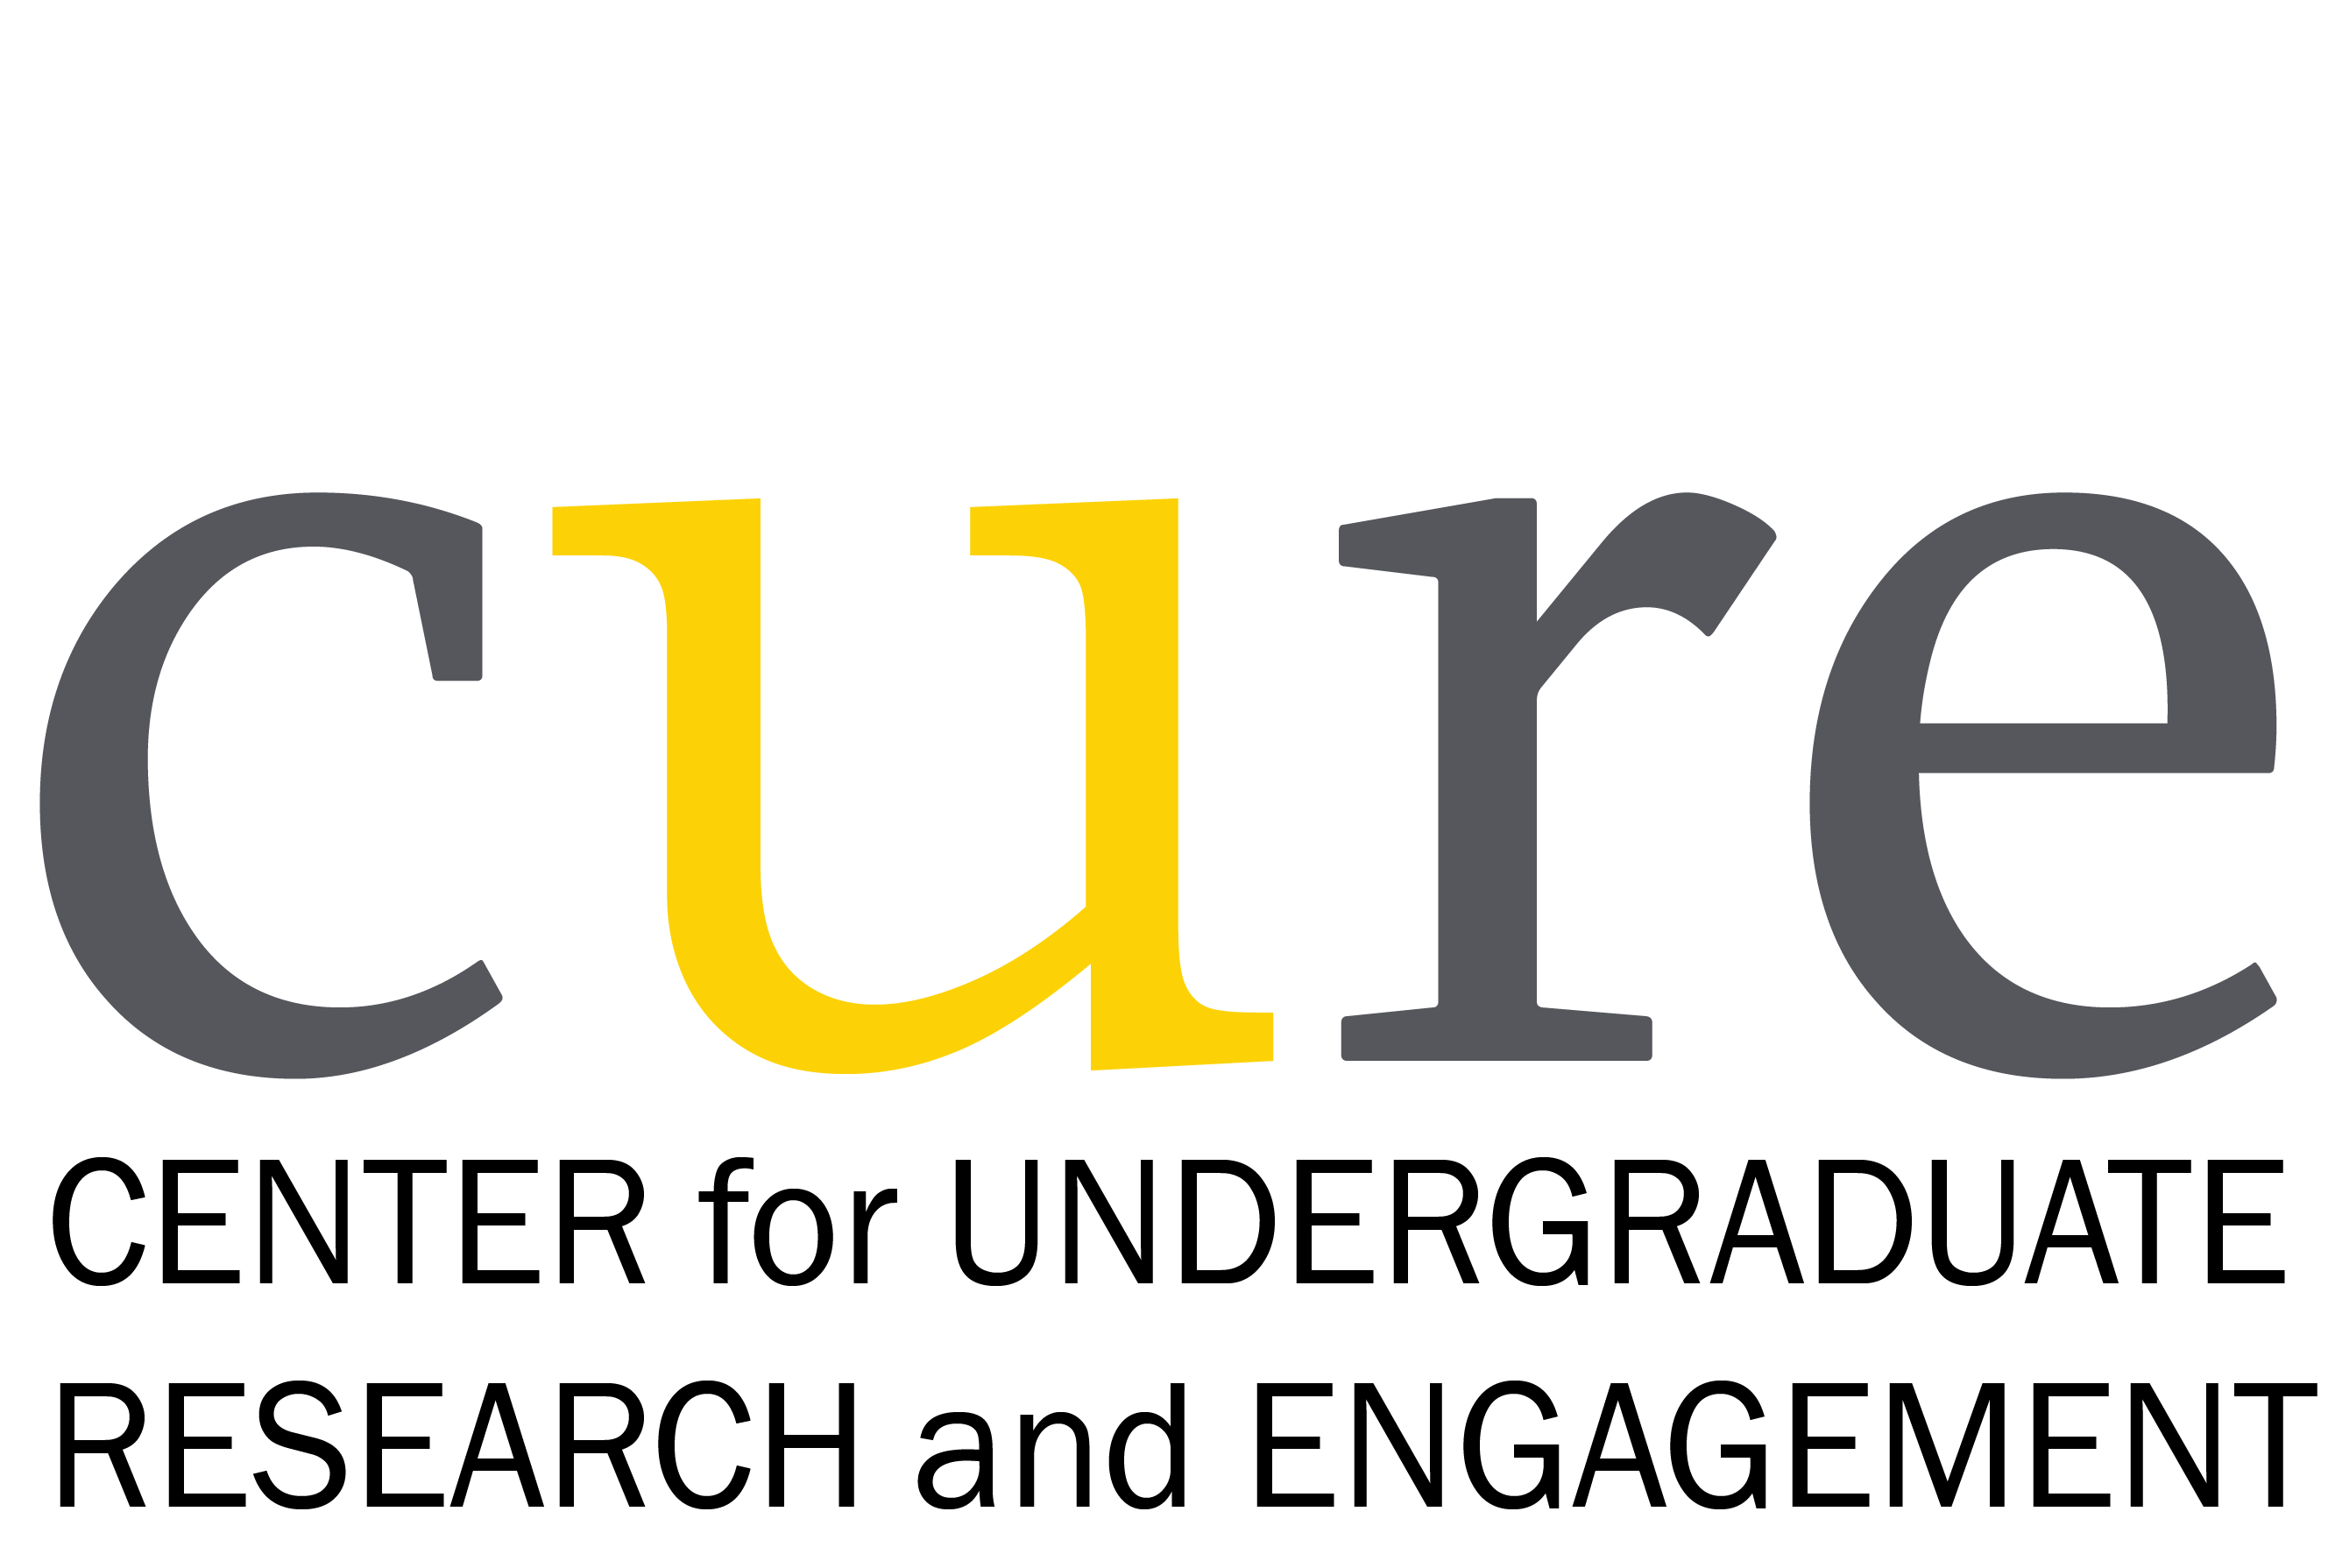 Center for Undergraduate Research and Engagement